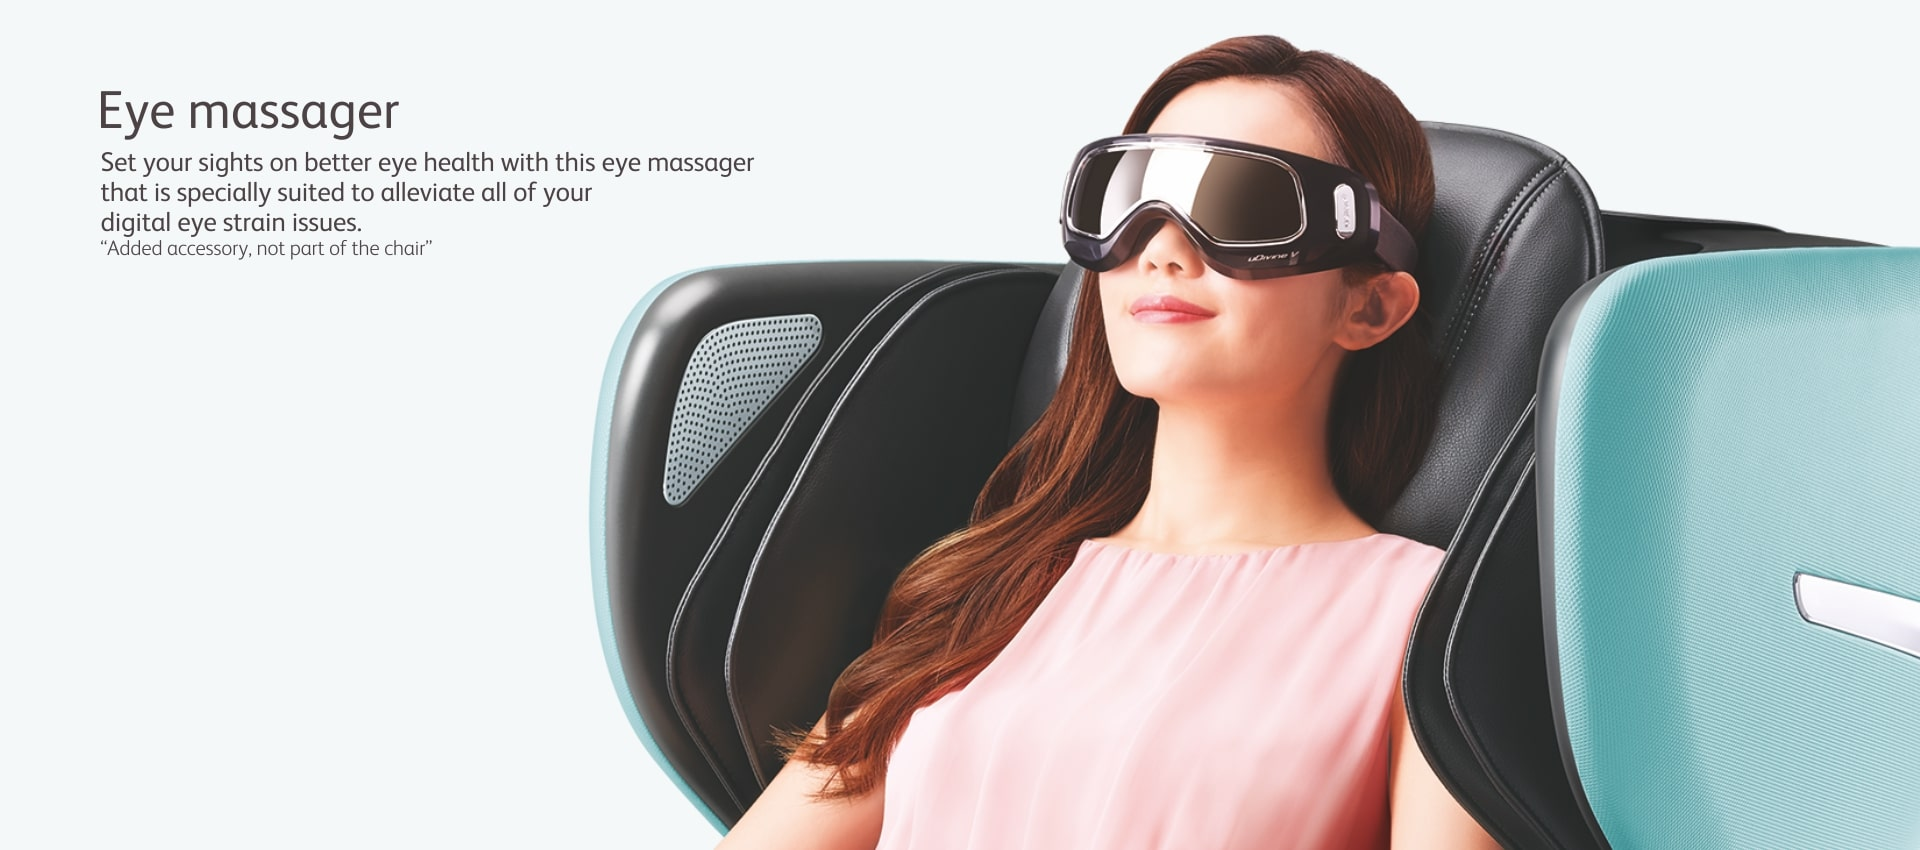 Udivine V Massage Chair Eye Massager